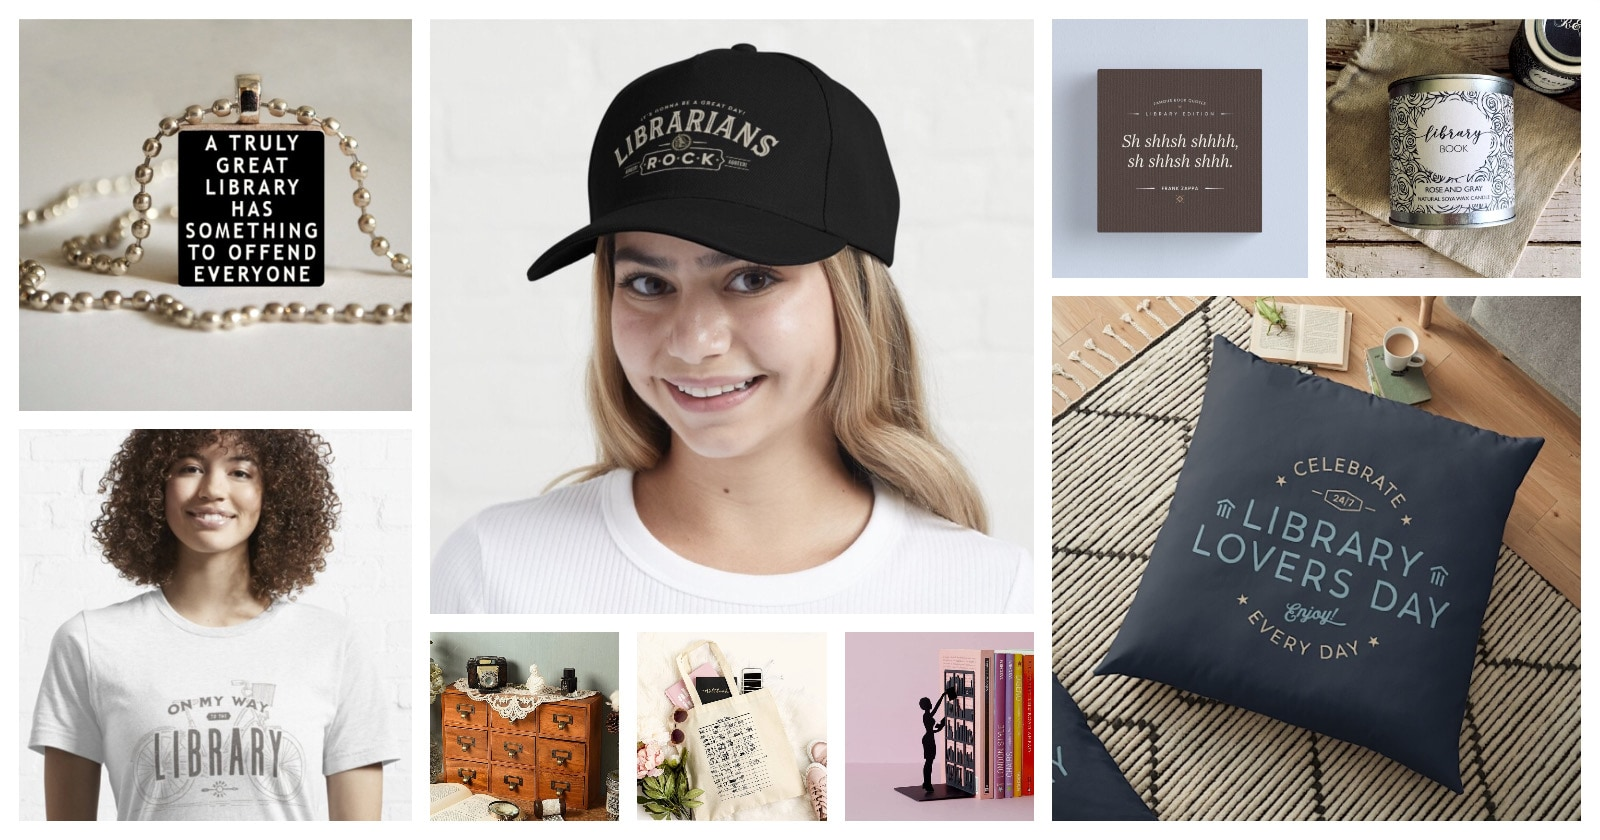 Best gifts merch for librarians library lovers